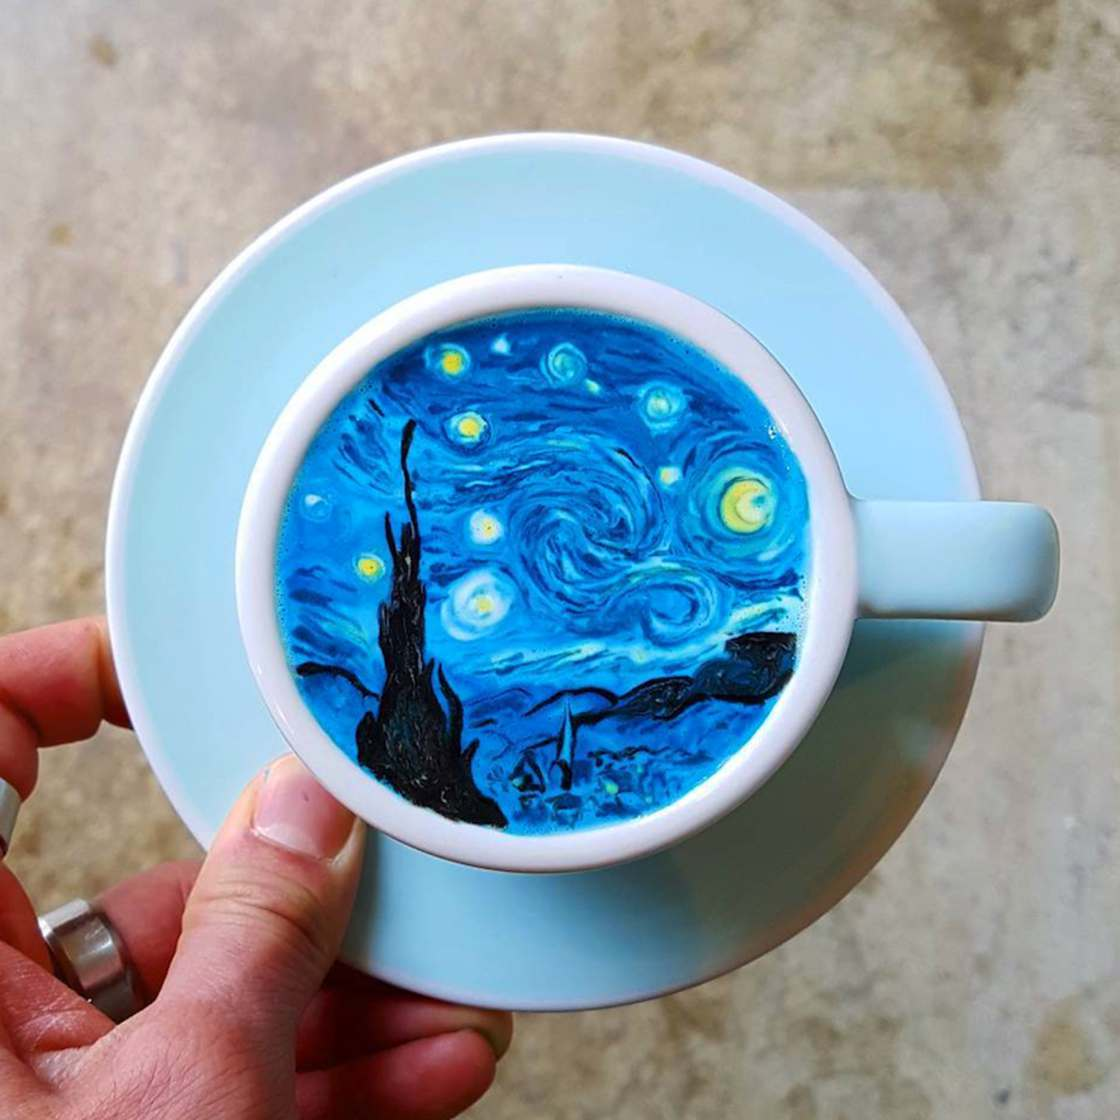 Art On Coffee – Barista creates impressive art on your coffee foam